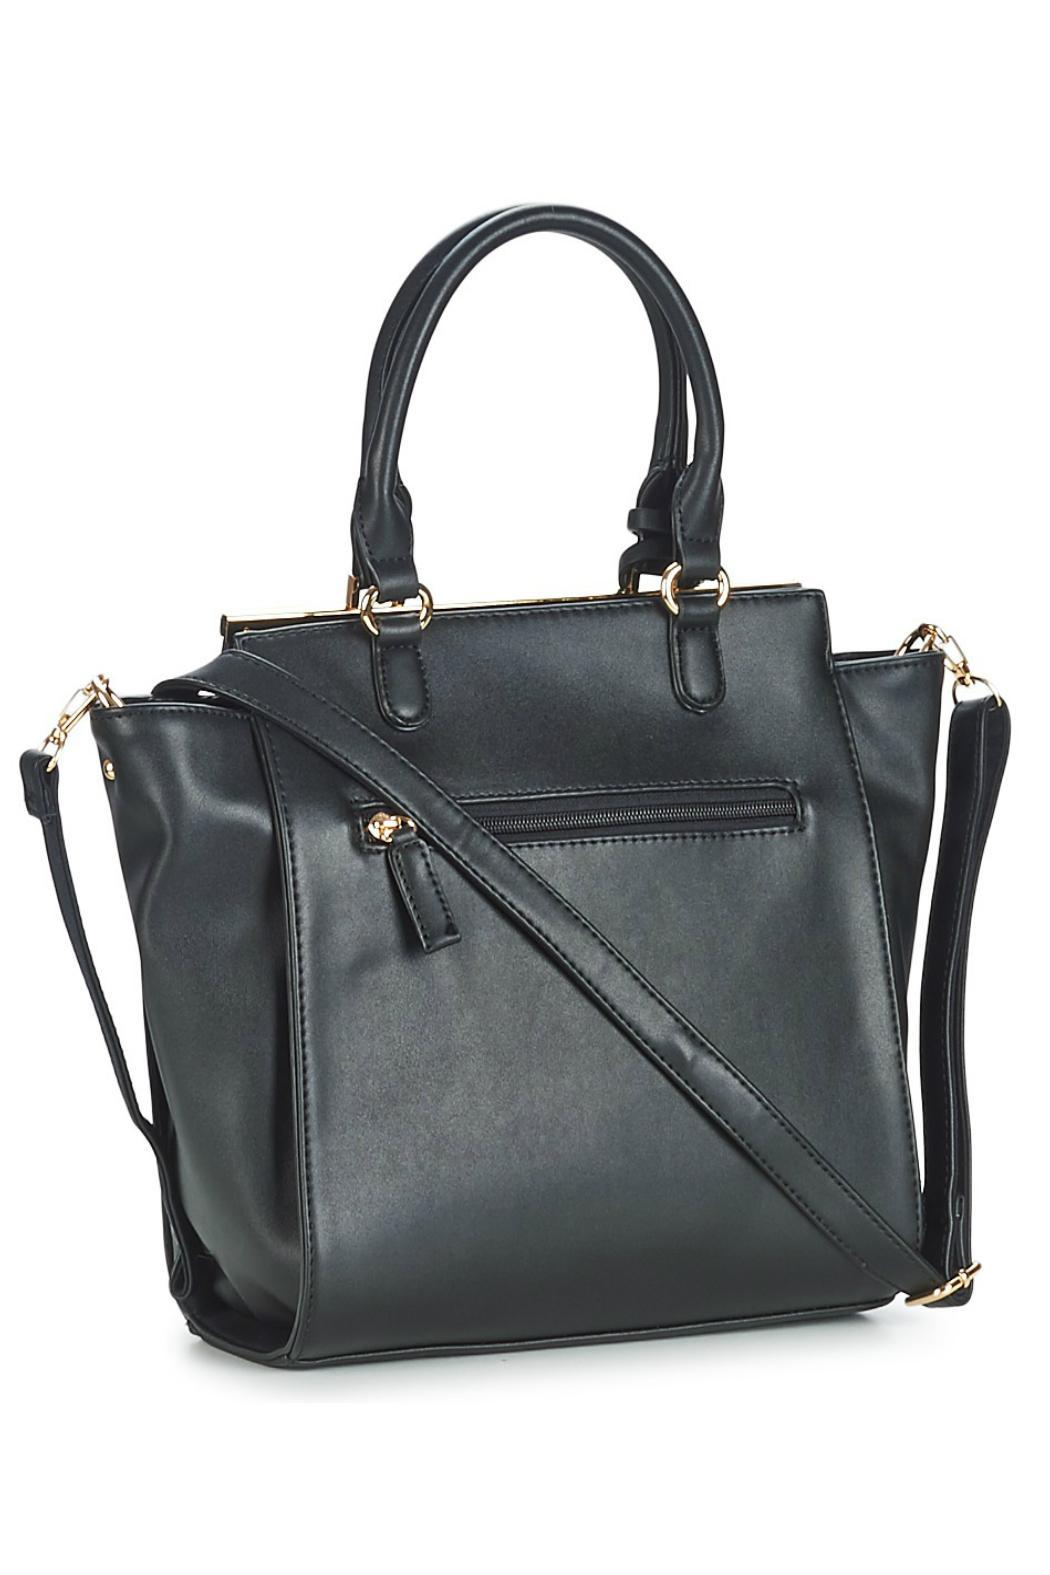 7b4d5ef893 David Jones Quilted Black Handbag from Crouch End by .